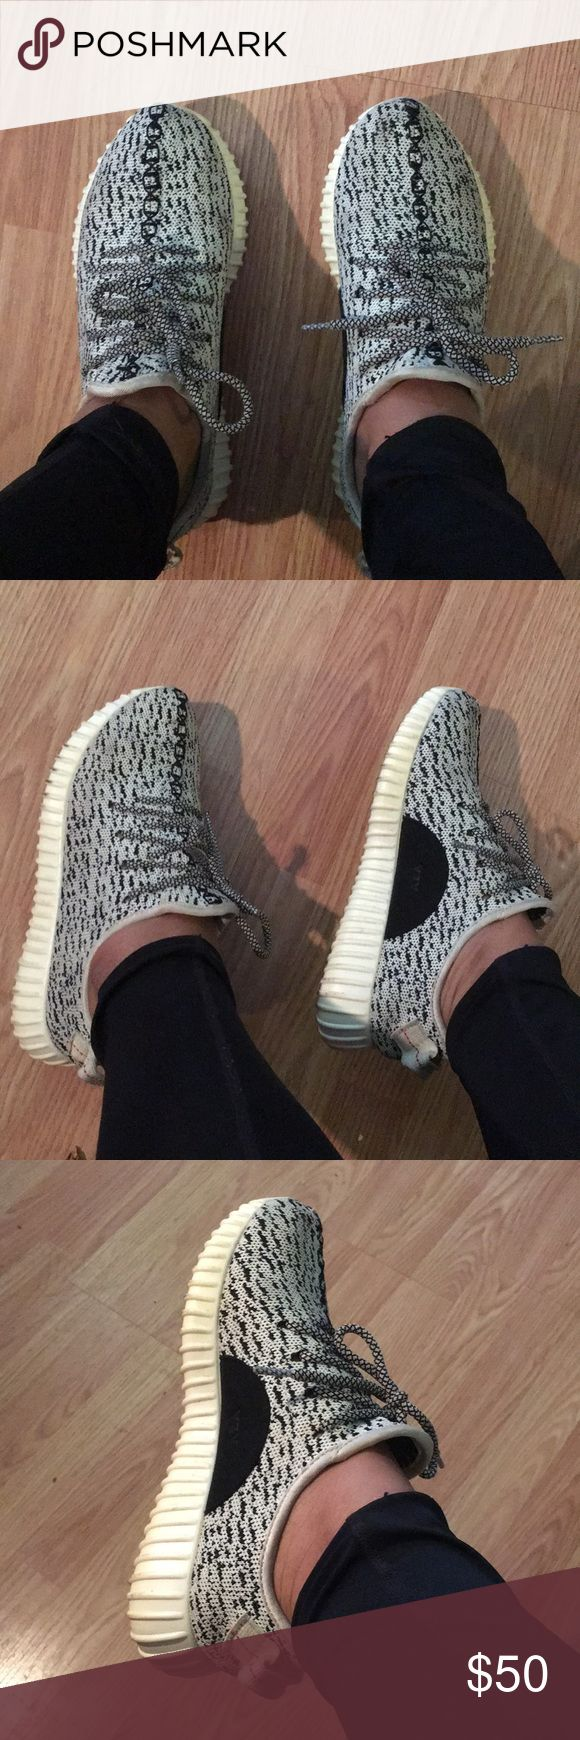 Adidas Boost Black & White Sneakers Not Authentic. Super Cute & Comfy ✨🌟 adidas Shoes Sneakers